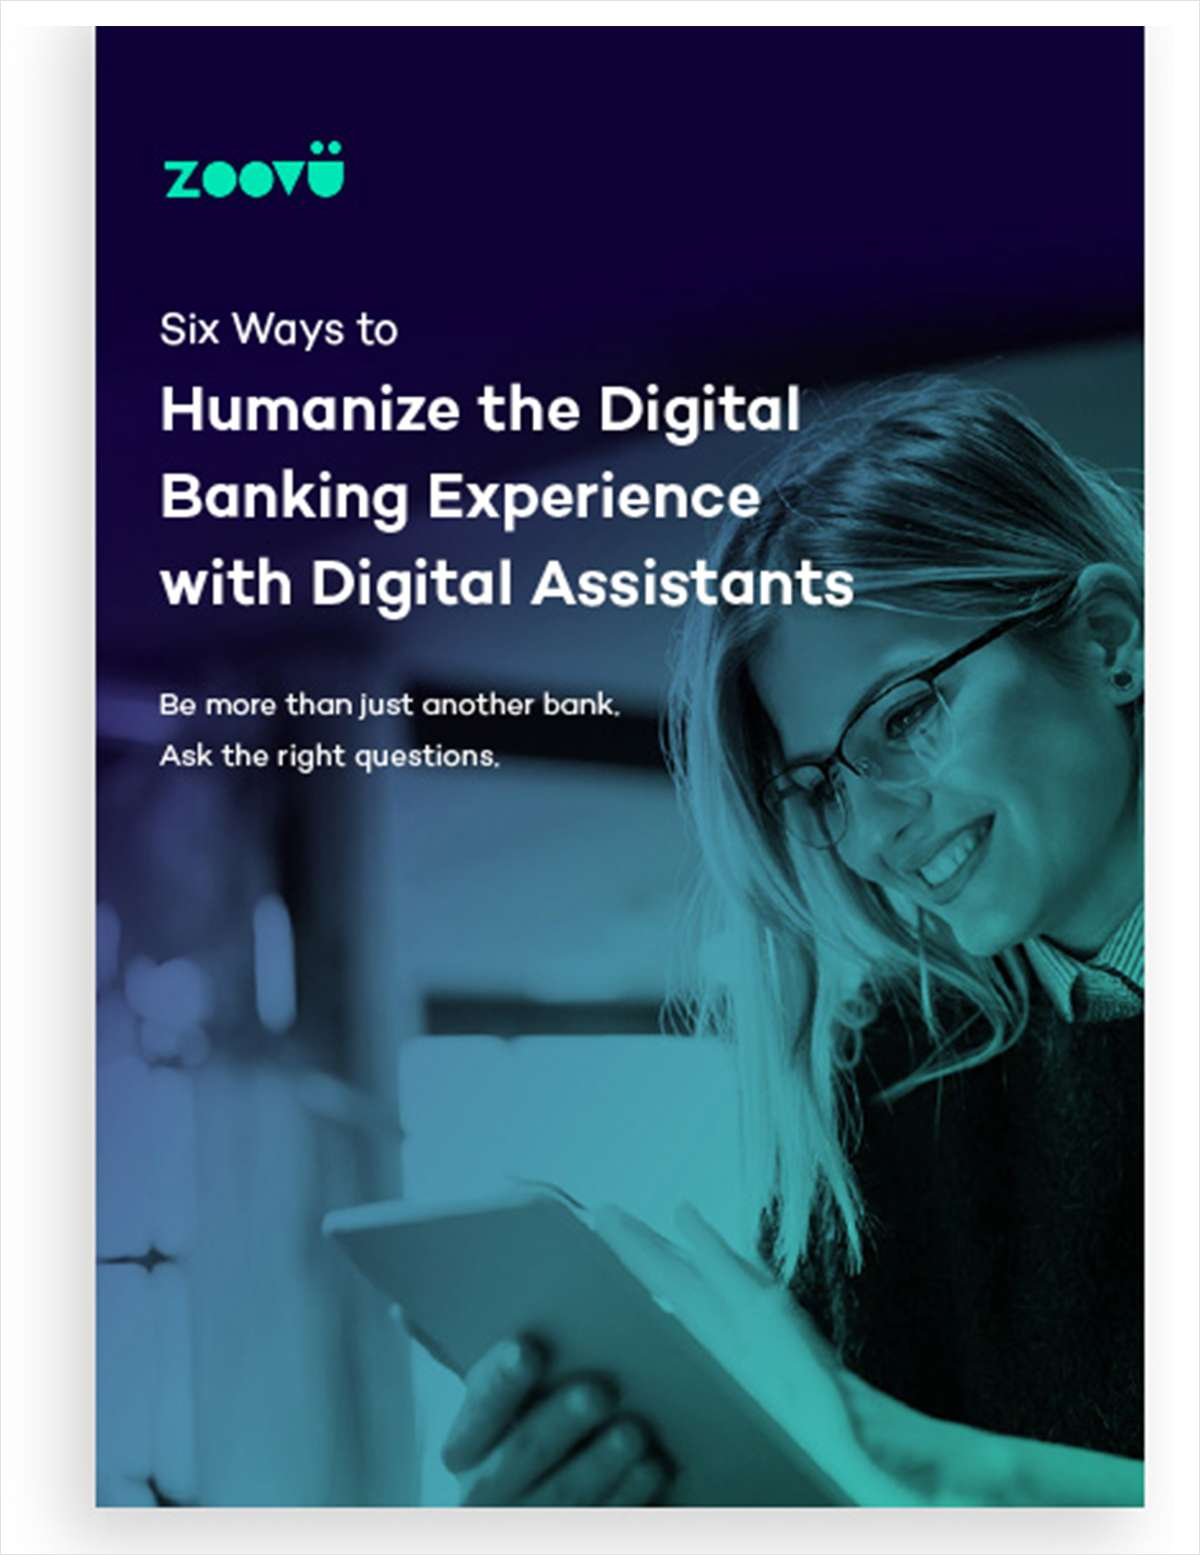 How to Humanize Digital Banking with Digital Assistants